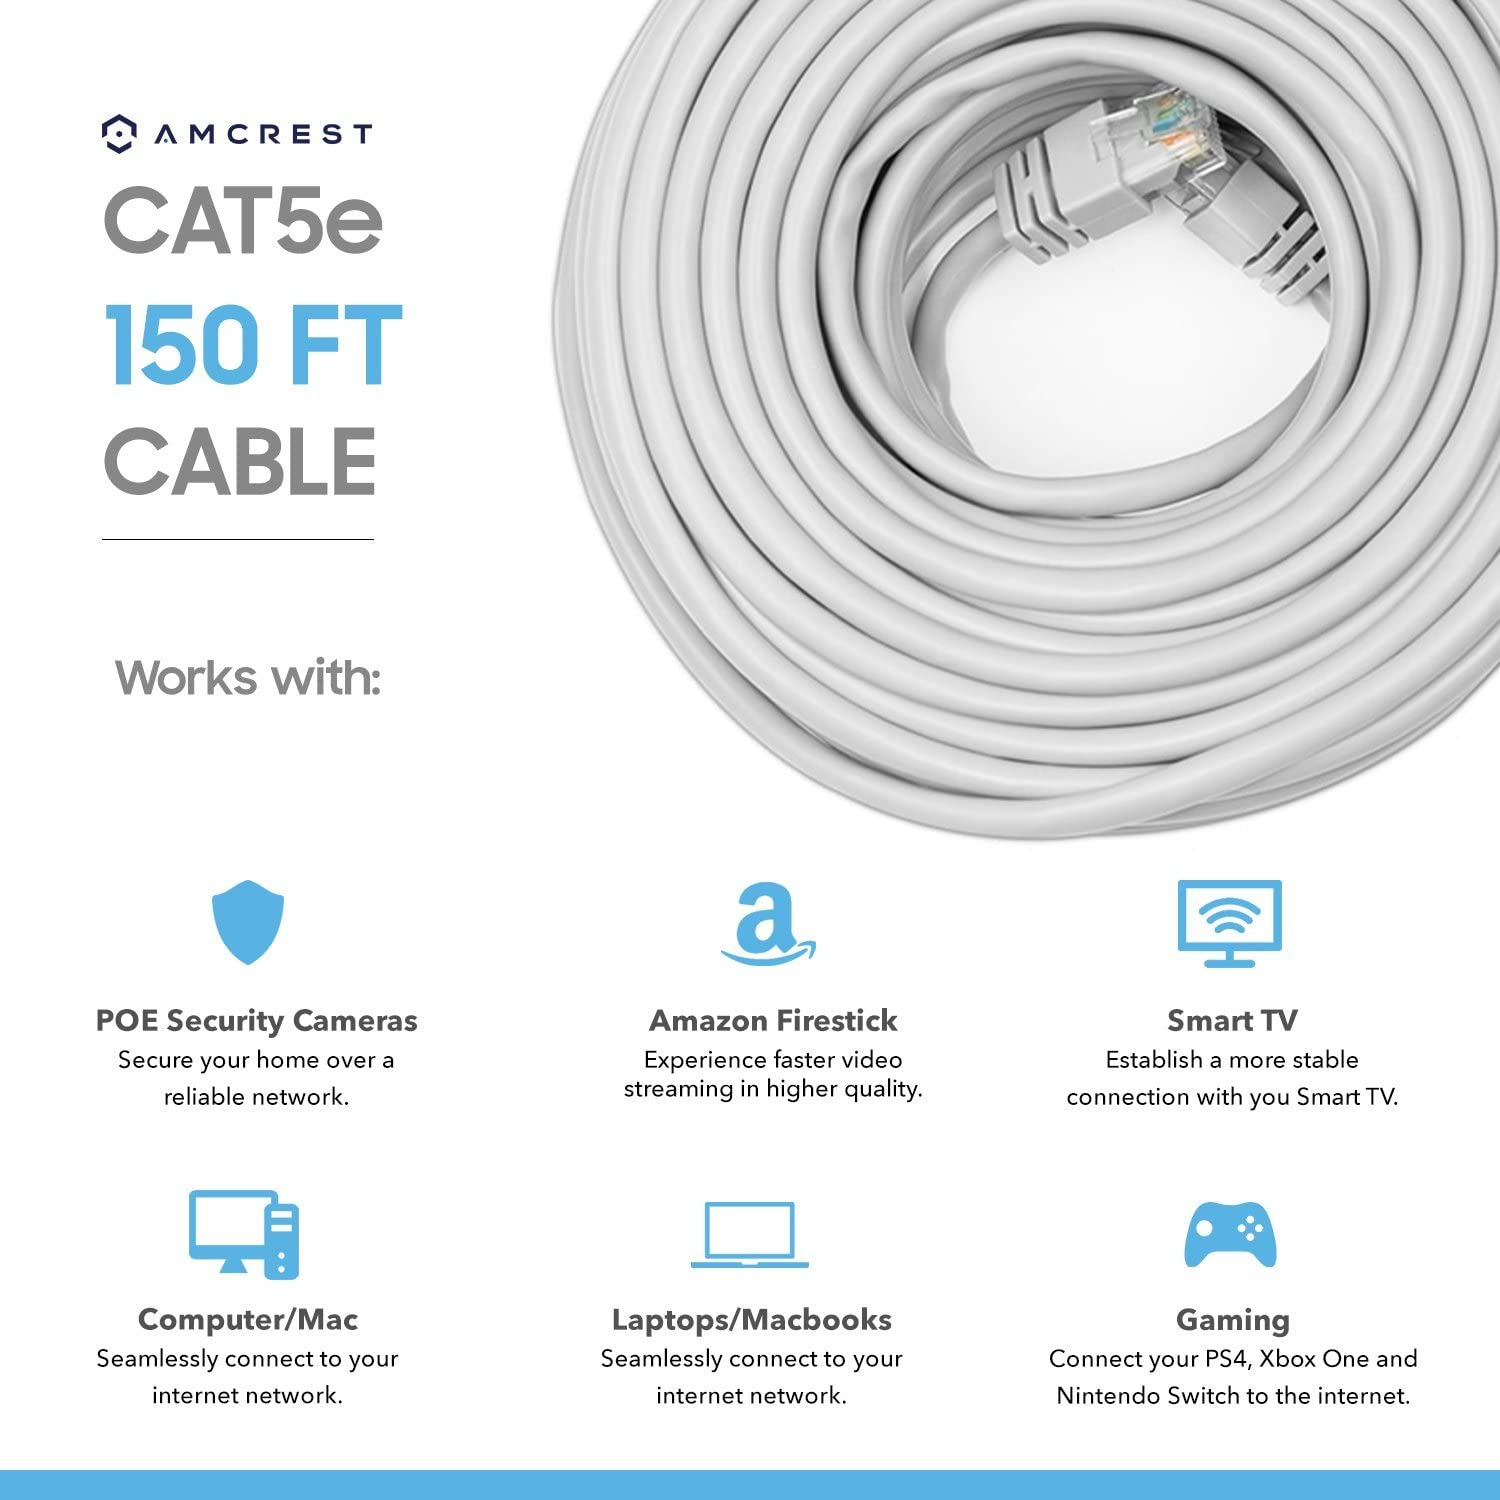 Cat5e Cat 5e Cables Cable 60ft Ethernet Internet High Speed Network For POE TV,